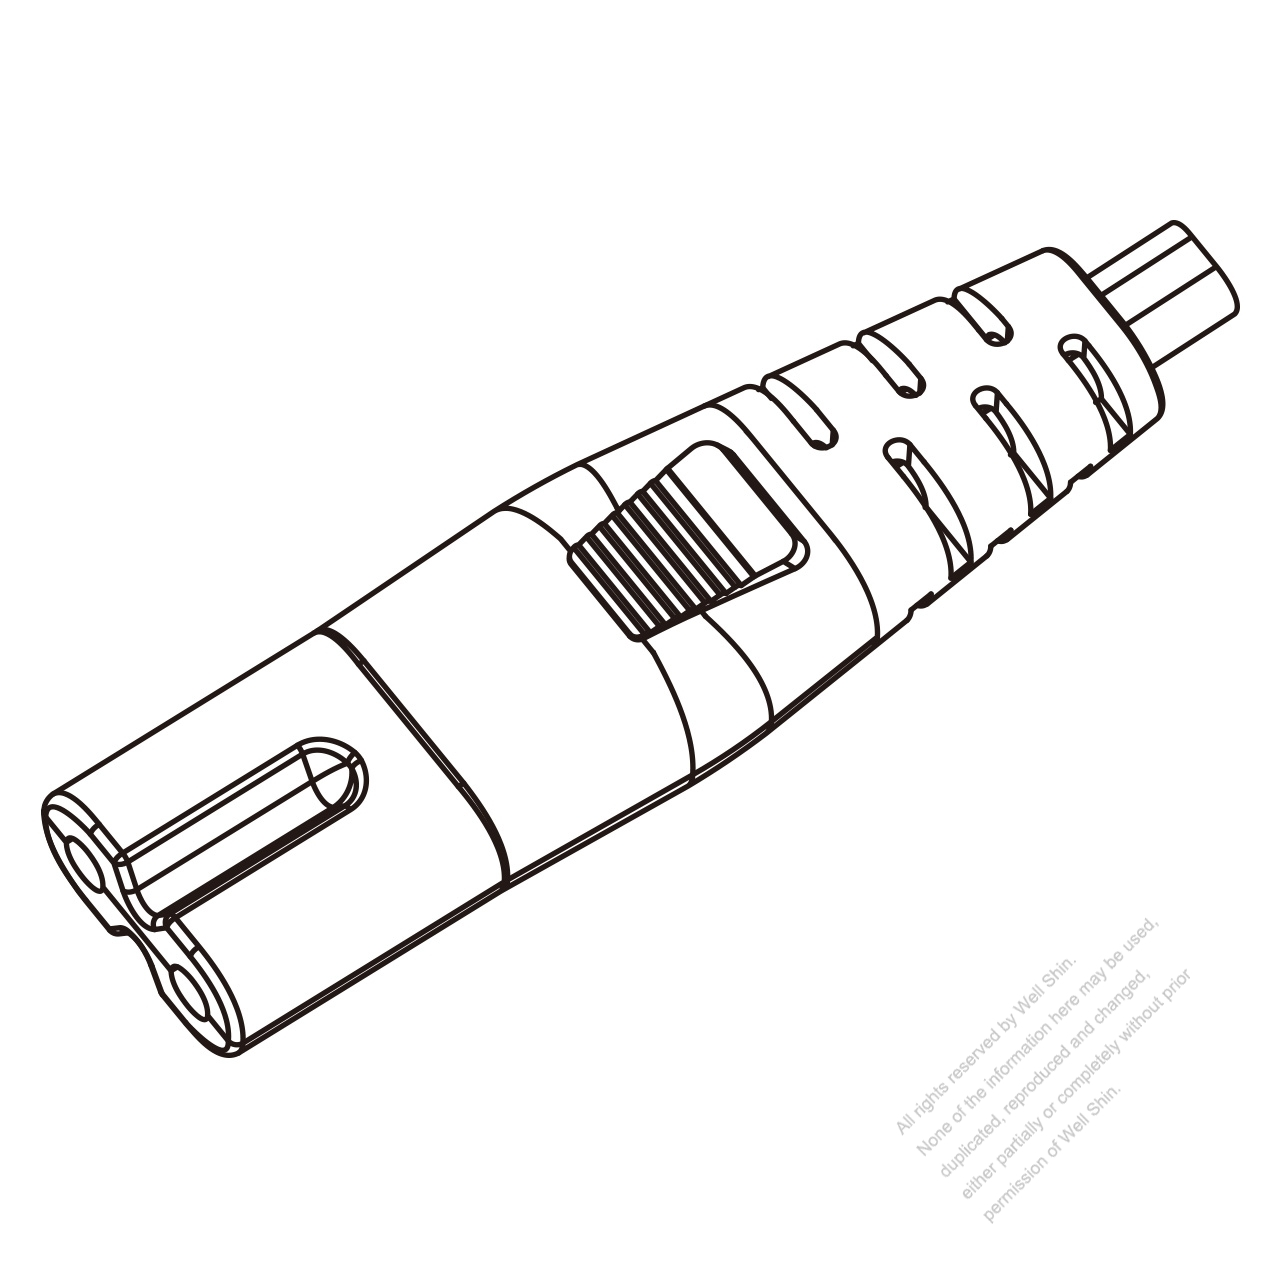 Iec 320 C7 Connectors 2 Pin Straight 7a 10a 125 2 5a 7a